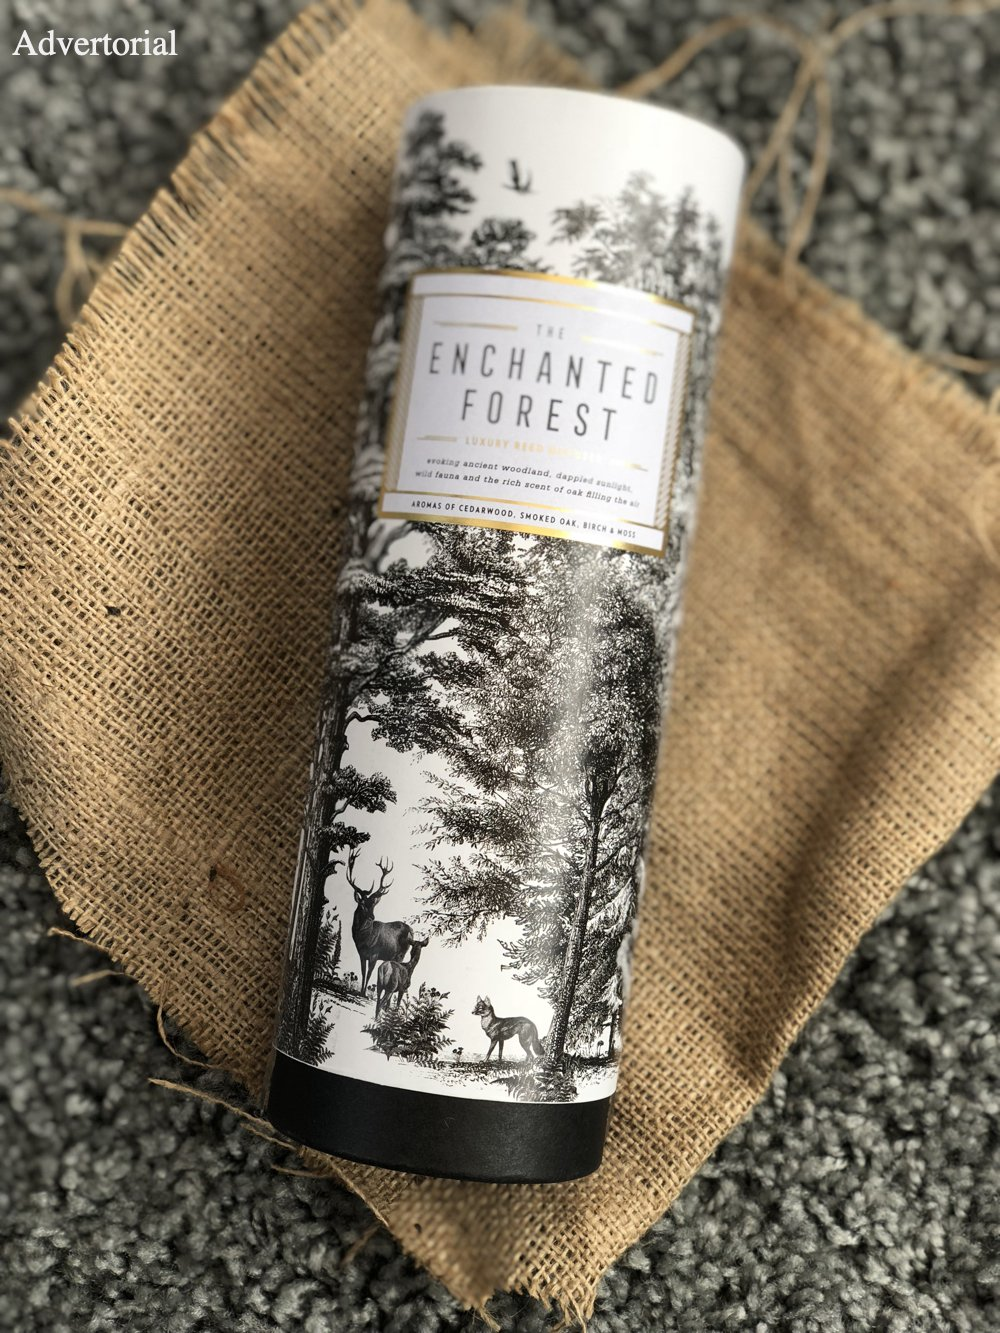 The Enchanted Forest Chase & Wonder reed diffuser in it's packaging